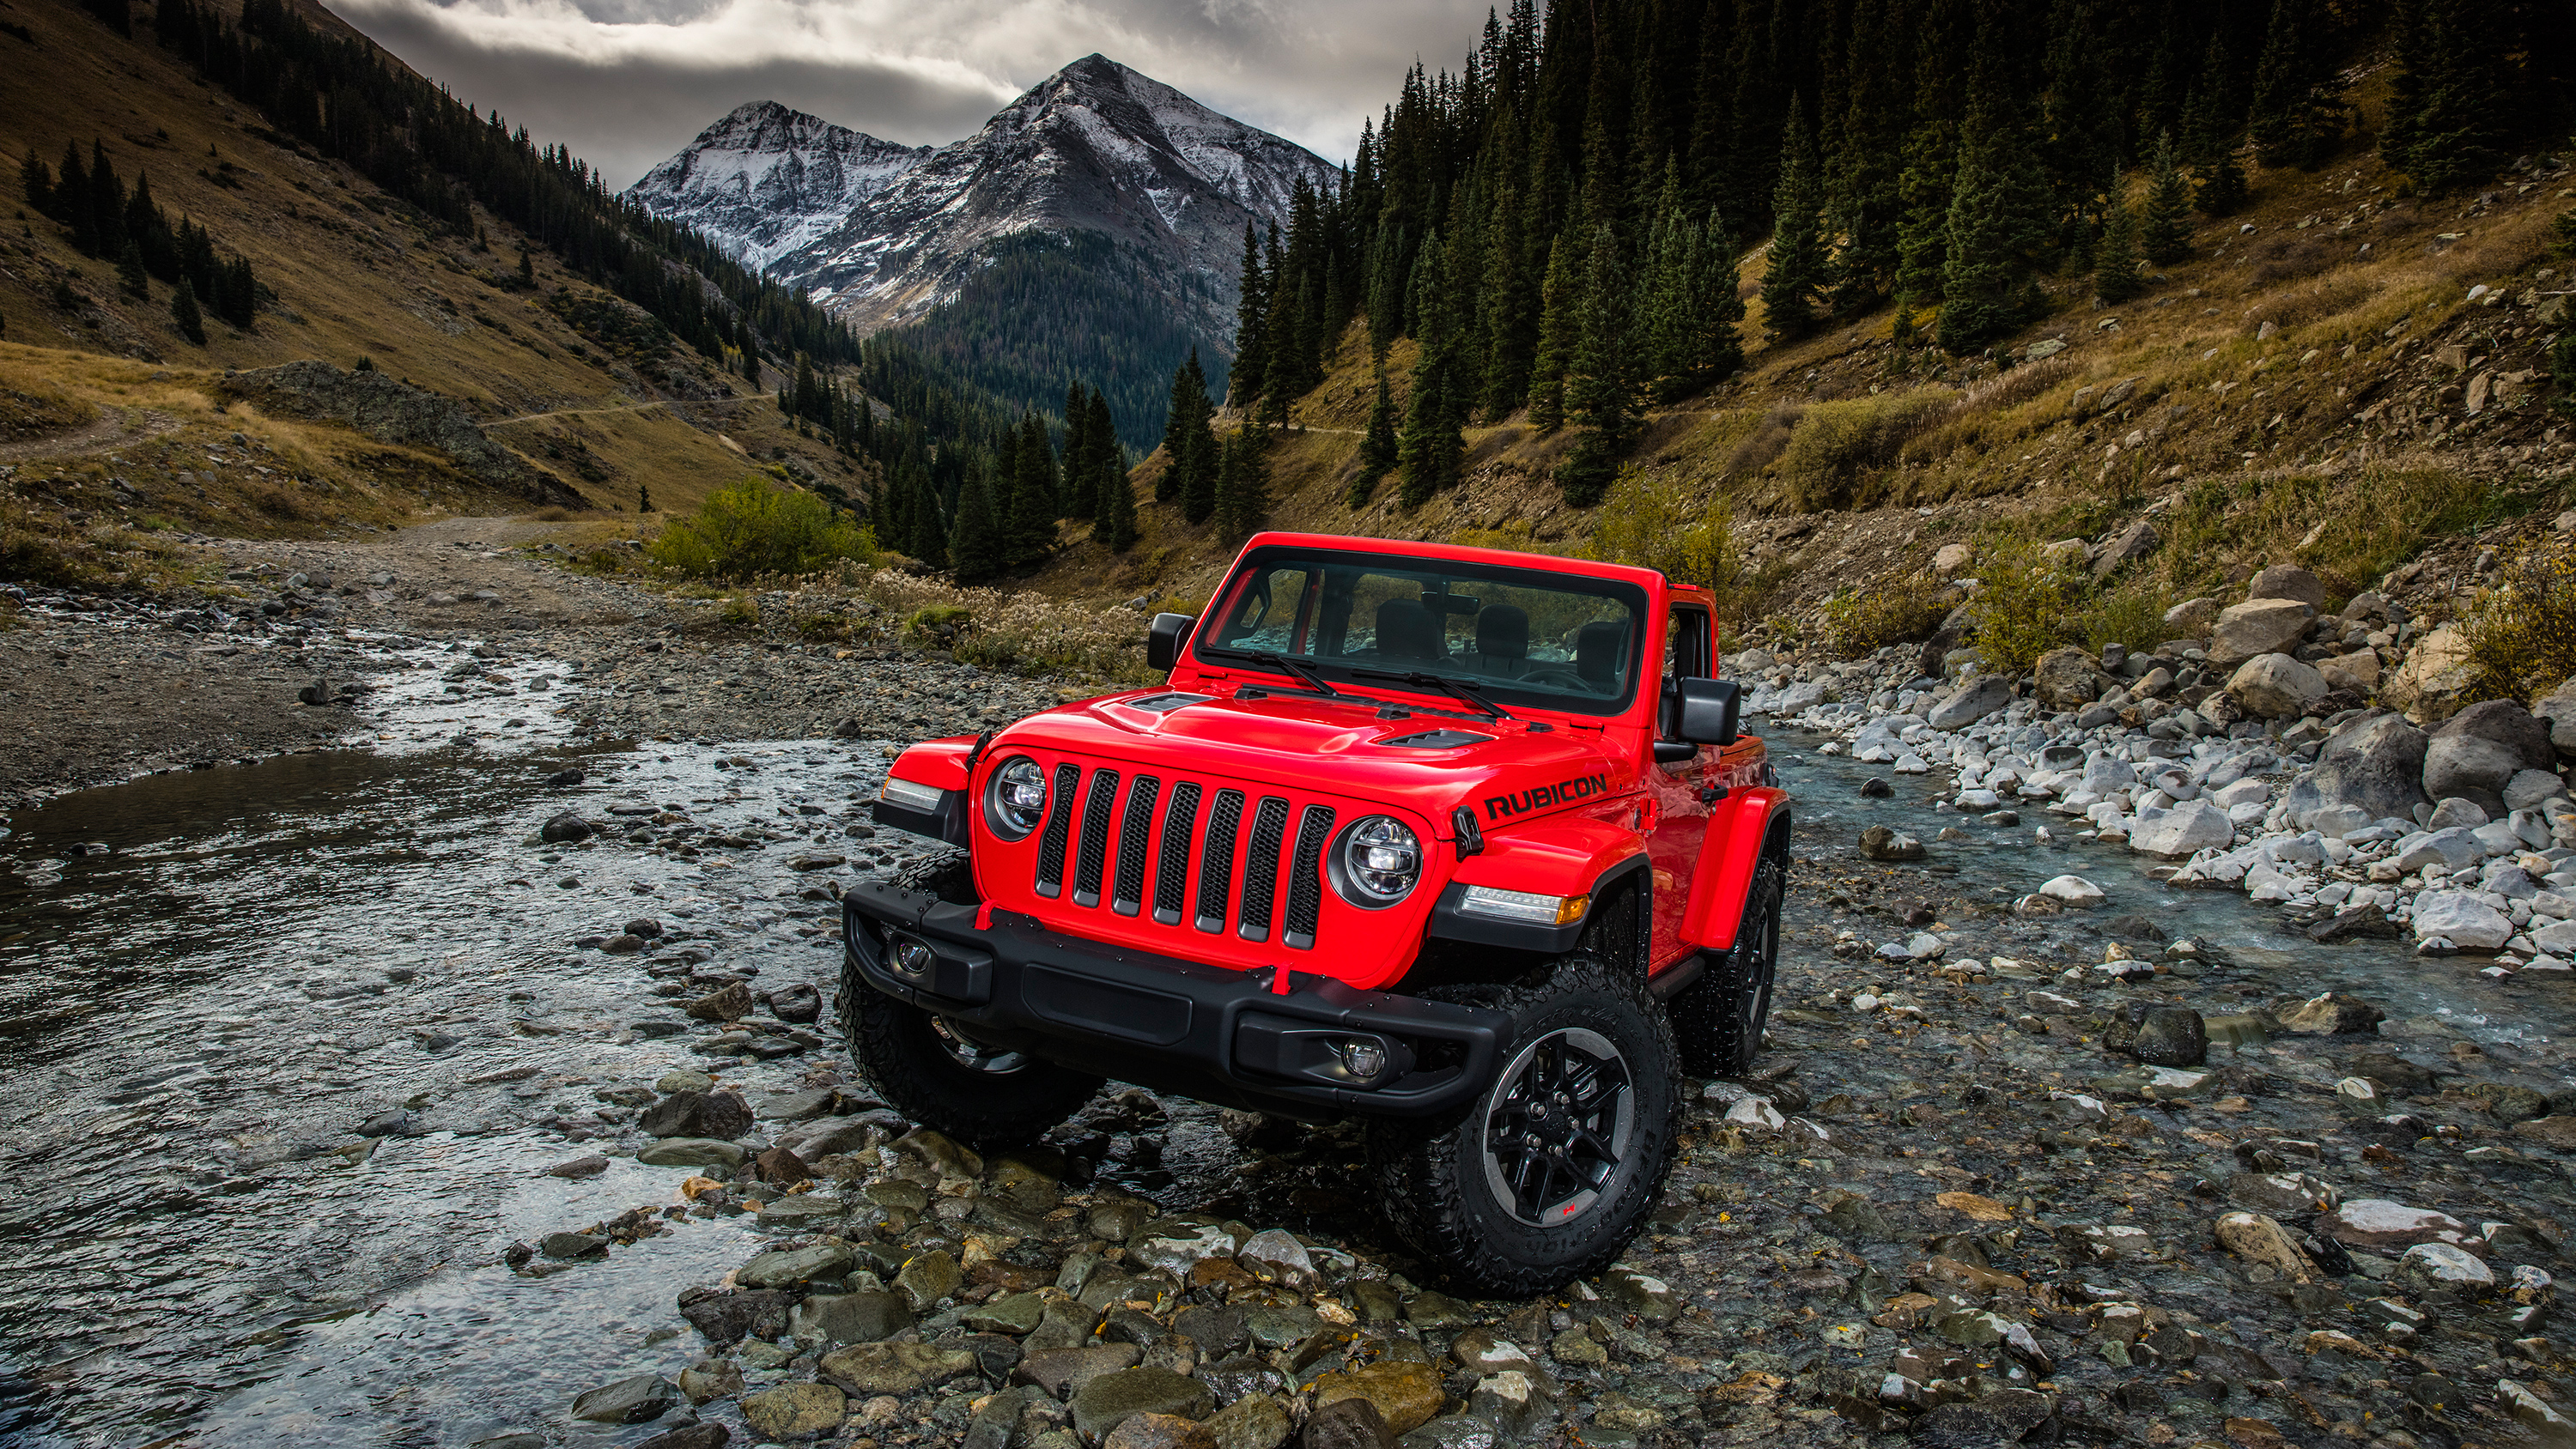 2018 jeep wrangler rubicon wallpaper hd car wallpapers for Wallpaper home 2018